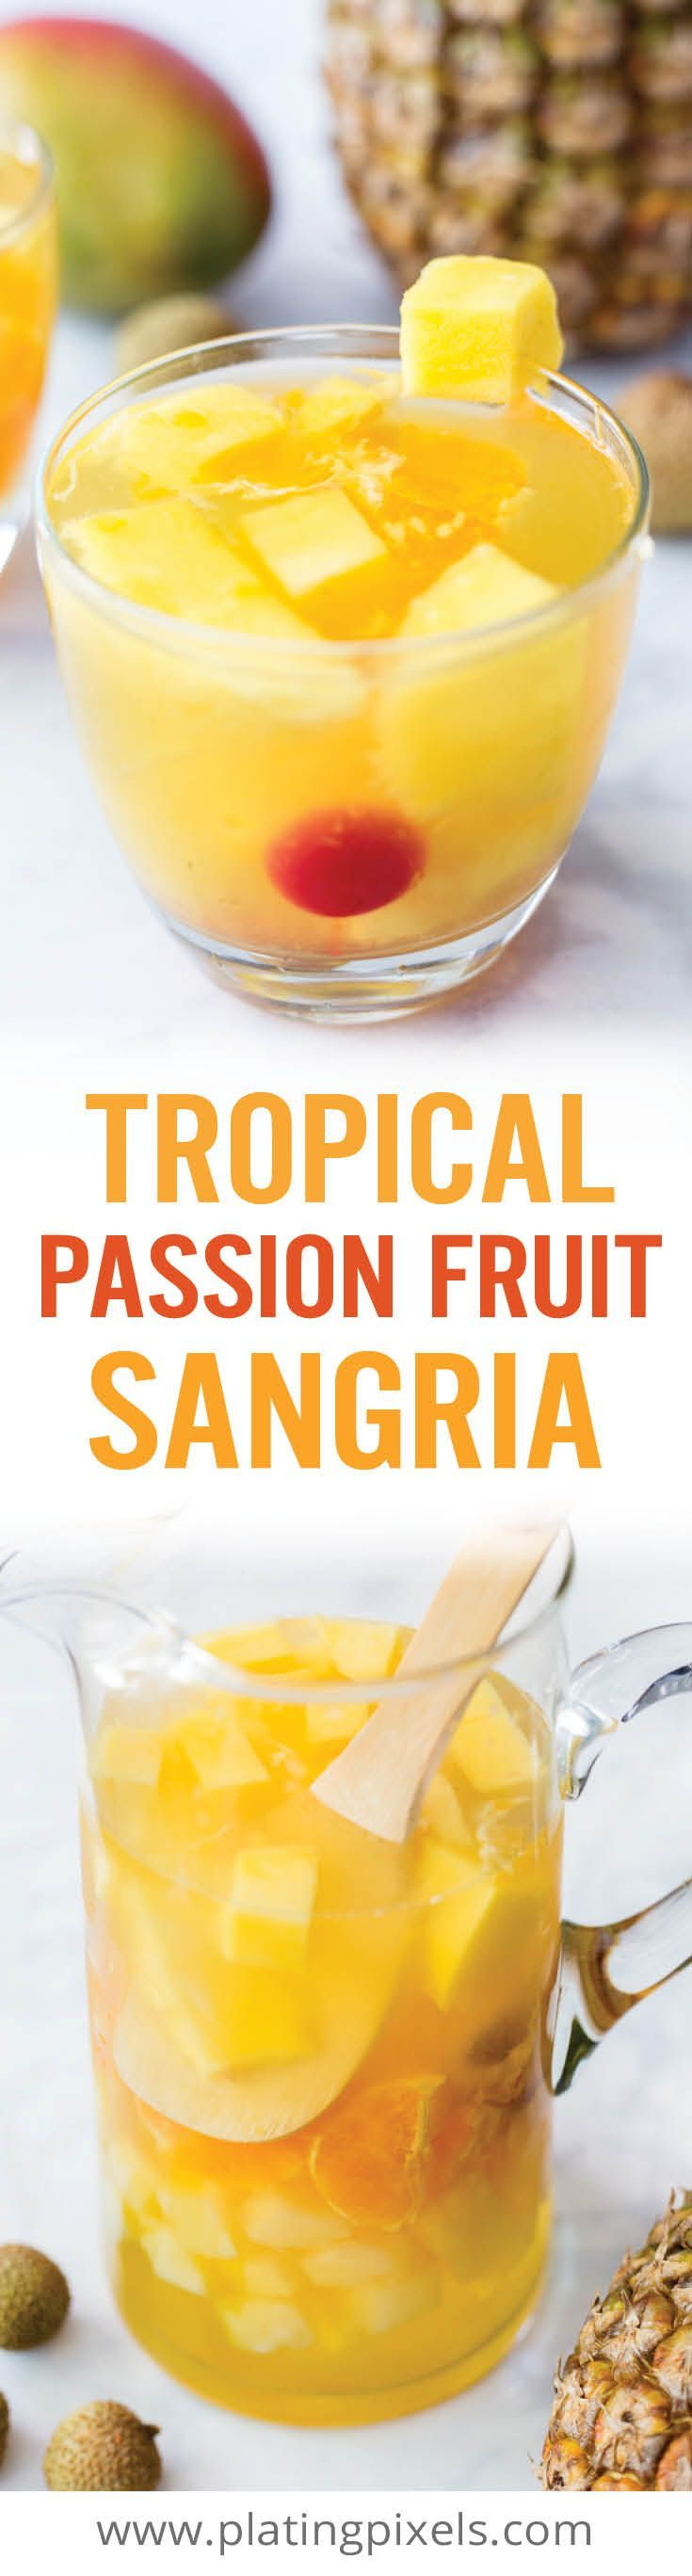 Msg 4 21+ Summer themed Tropical Passion Fruit Sangria. An easy white sangria made with white wine, rum, pineapple, orange, mango, lychee and passion fruit syrup. #MyToraniSummer @walmart @ToraniFlavor [ad] - www.platingpixels.com